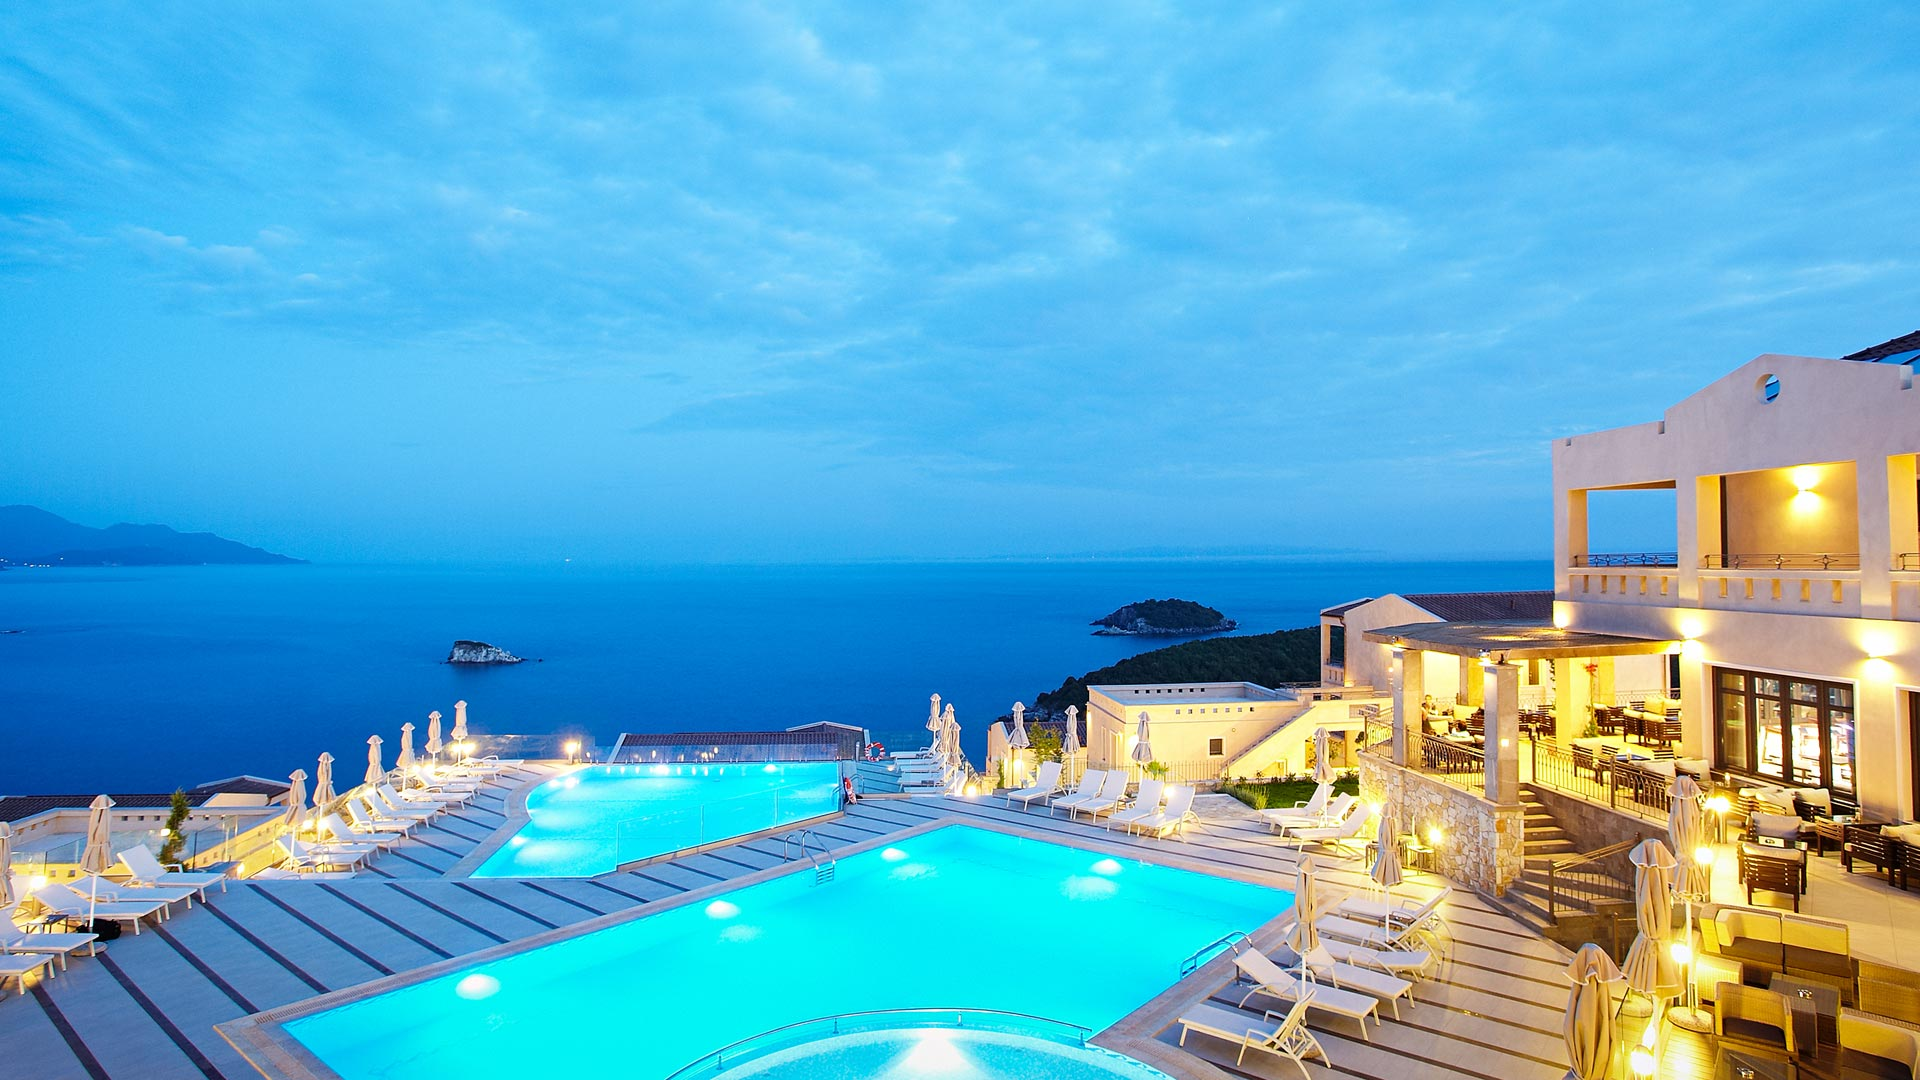 Santorini hotel, pool, romantic restaurant